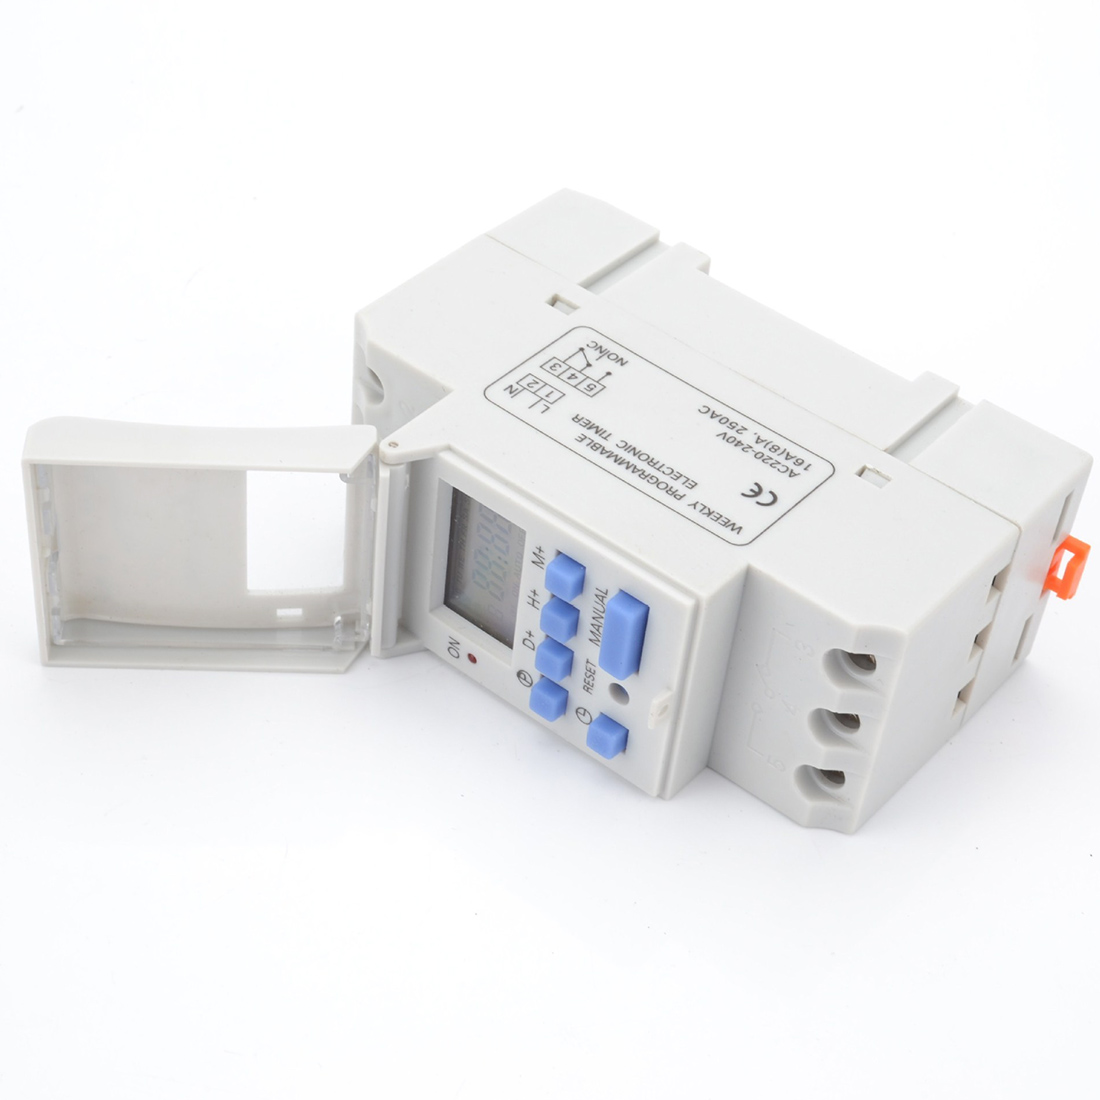 Relay Control Electronic Weekly 7 Days Programmable Digital Timer Switch 220V 230V 6-30A Safe and reliable thc15a zb18b timer switchelectronic weekly 7days programmable digital time switch relay timer control ac 220v 30a din rail mount